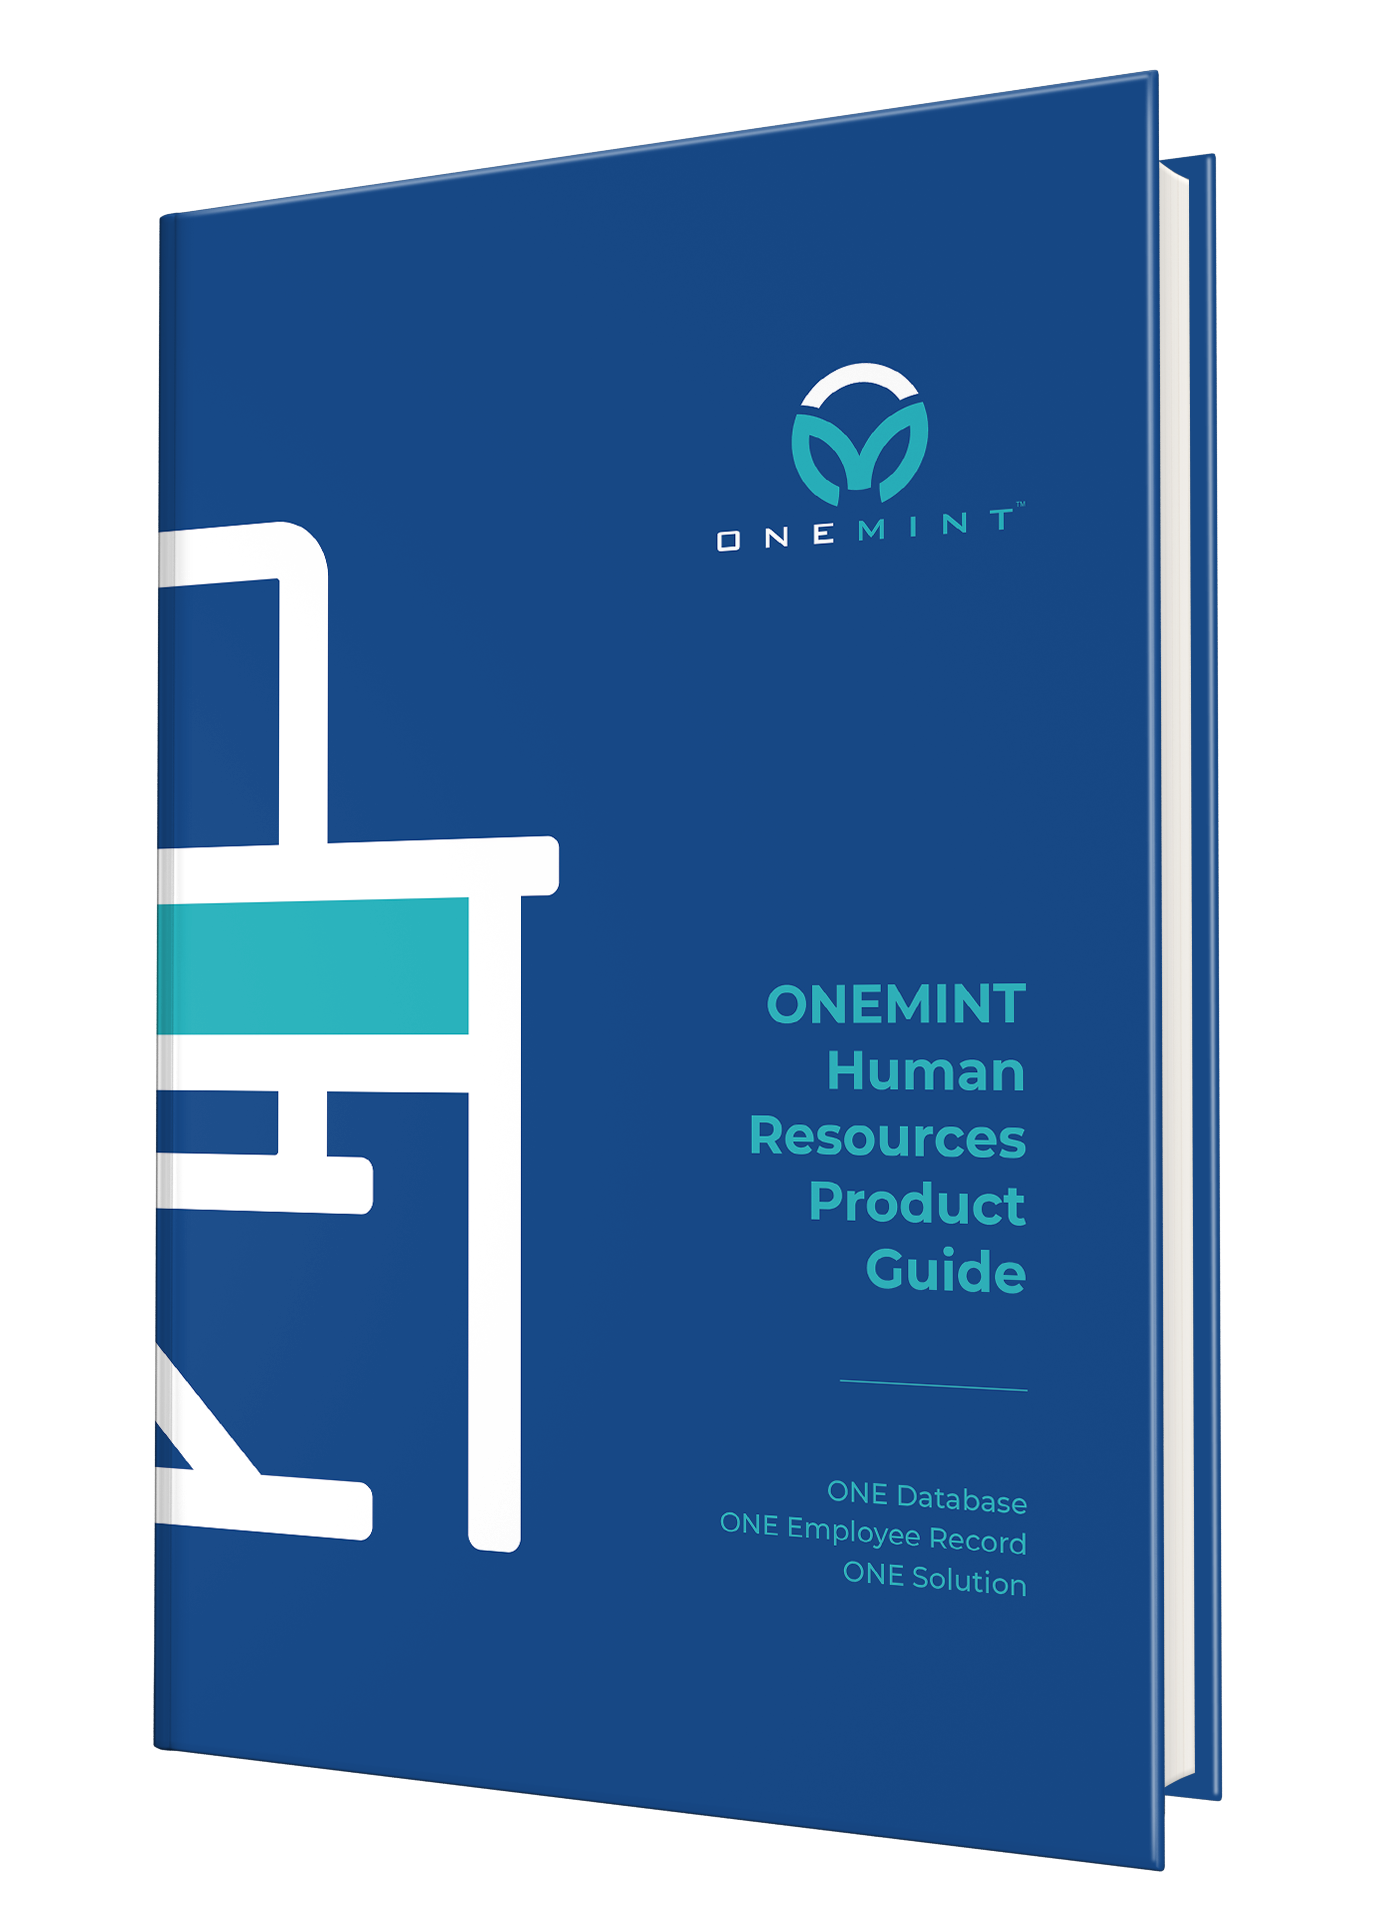 onemint-hr-product-guide-2018